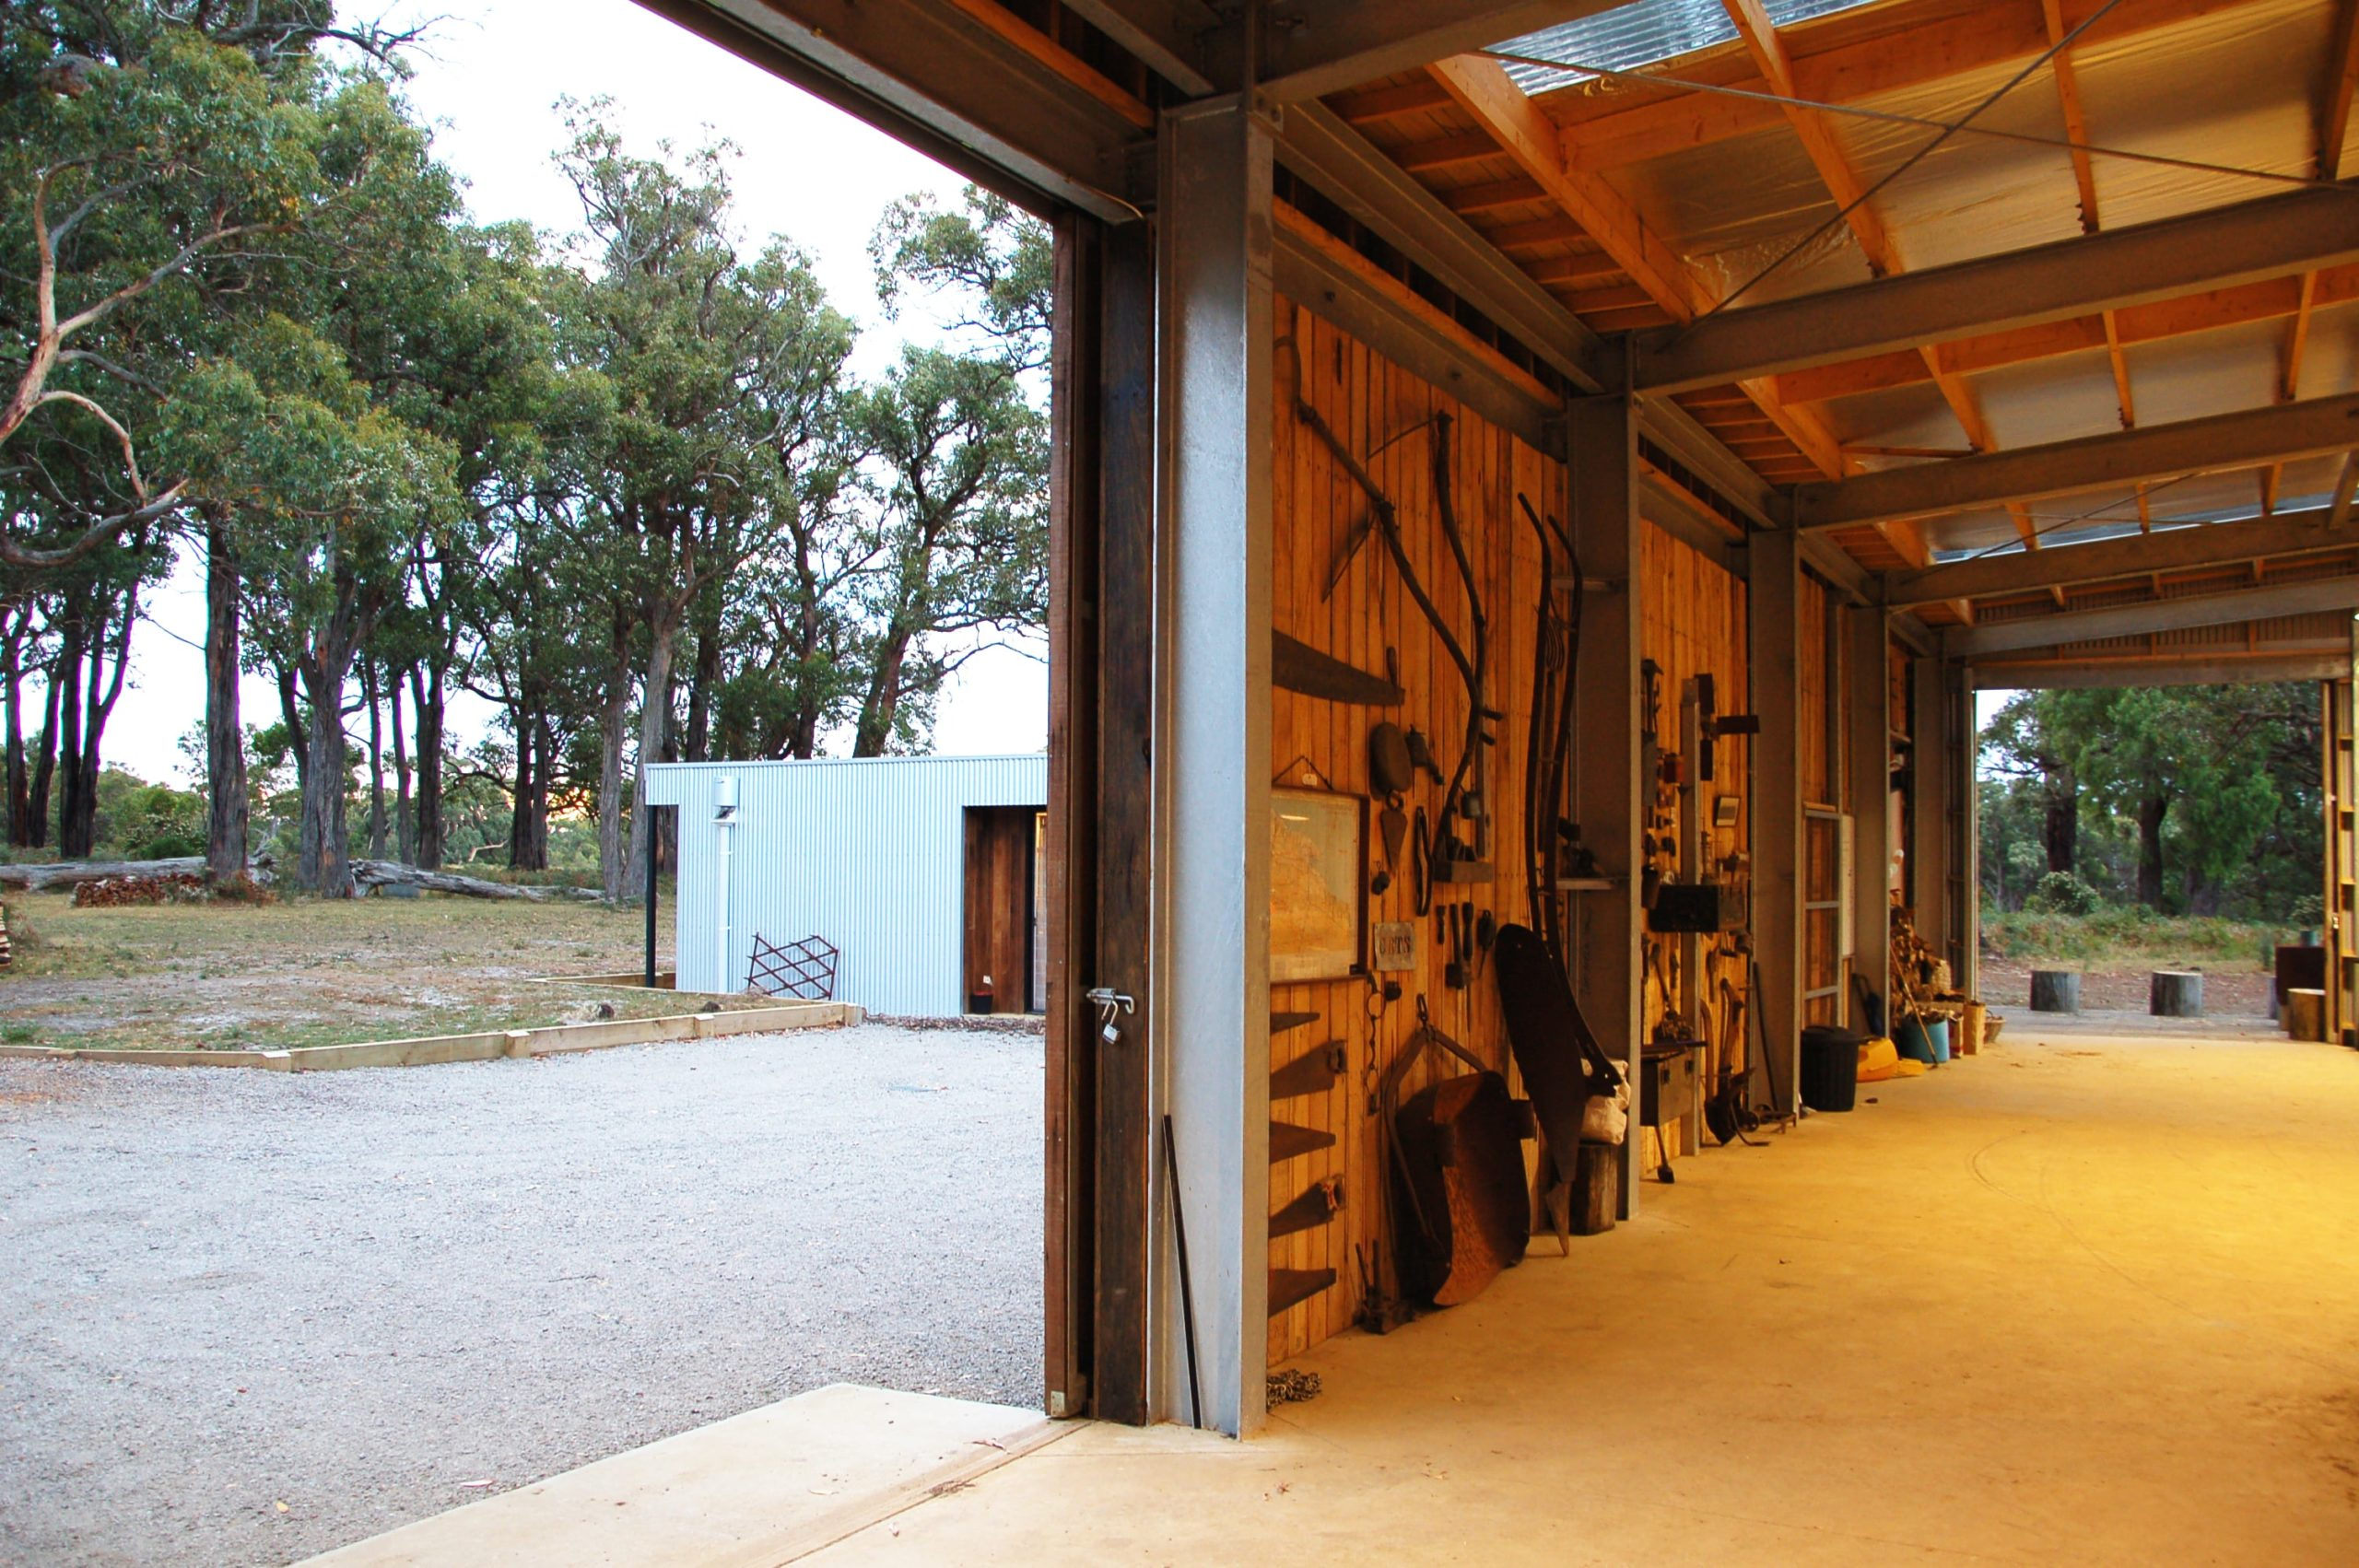 Just inside the large shed and garage is a large wall perfect for storage of various tools.Here you can also see the large metal beams that support the large structure.